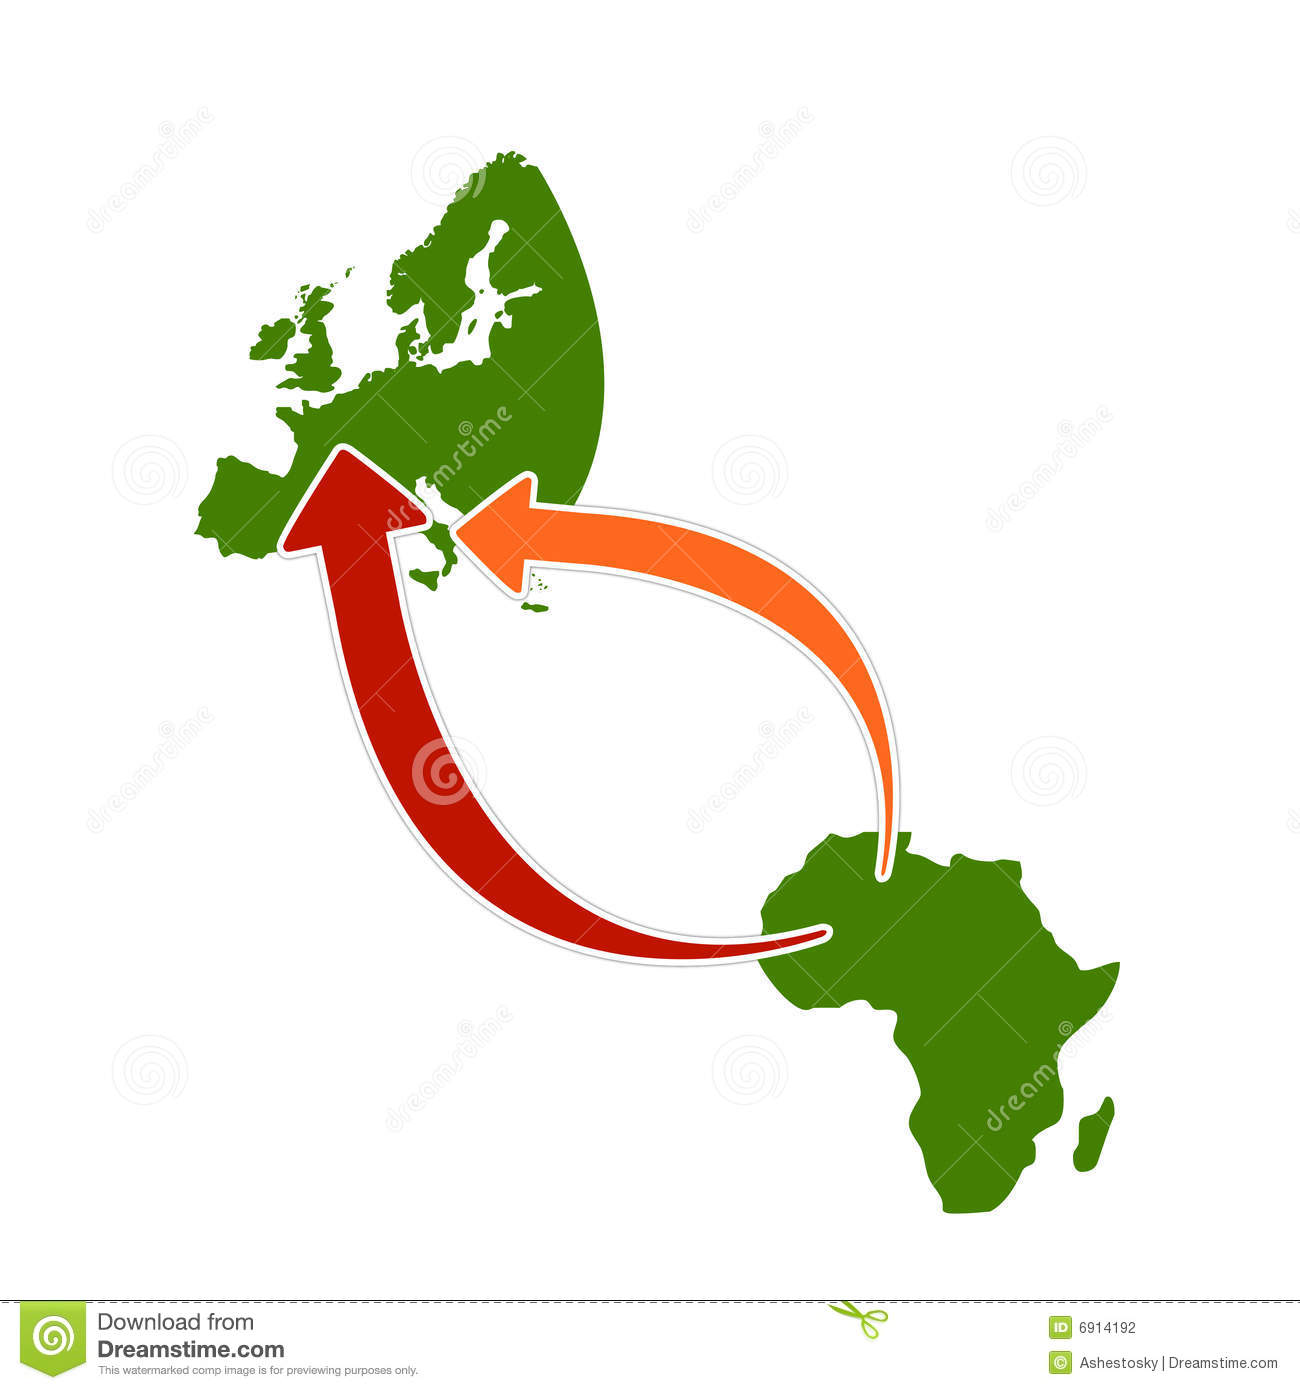 Simple illustration about emigration from africa stock for Illustration minimaliste